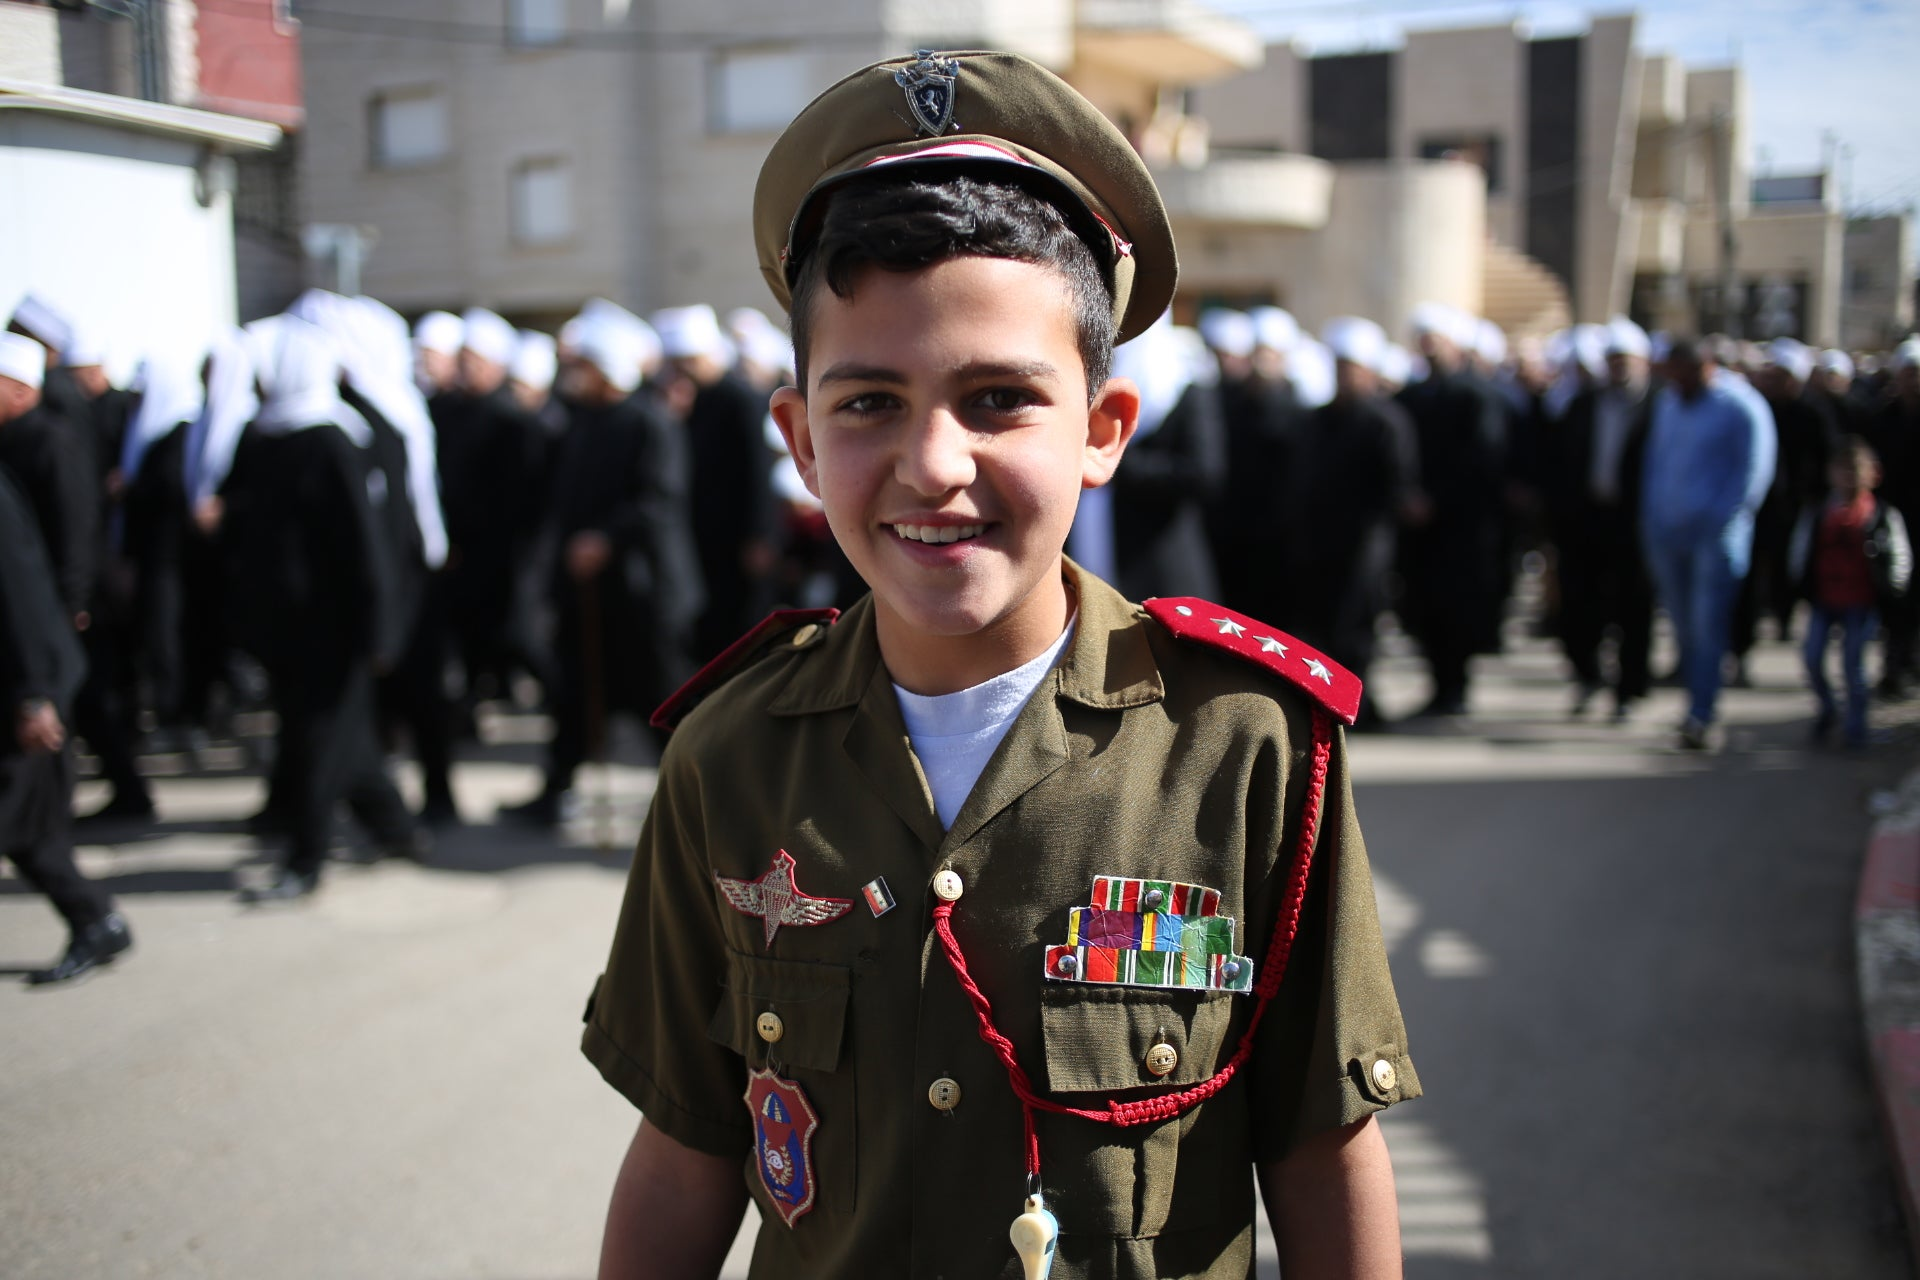 An Israeli Druze boy wears a military uniform at a protest in solidarity with Syrian Druze and in support of Bashar Assad, February 14, 2016.